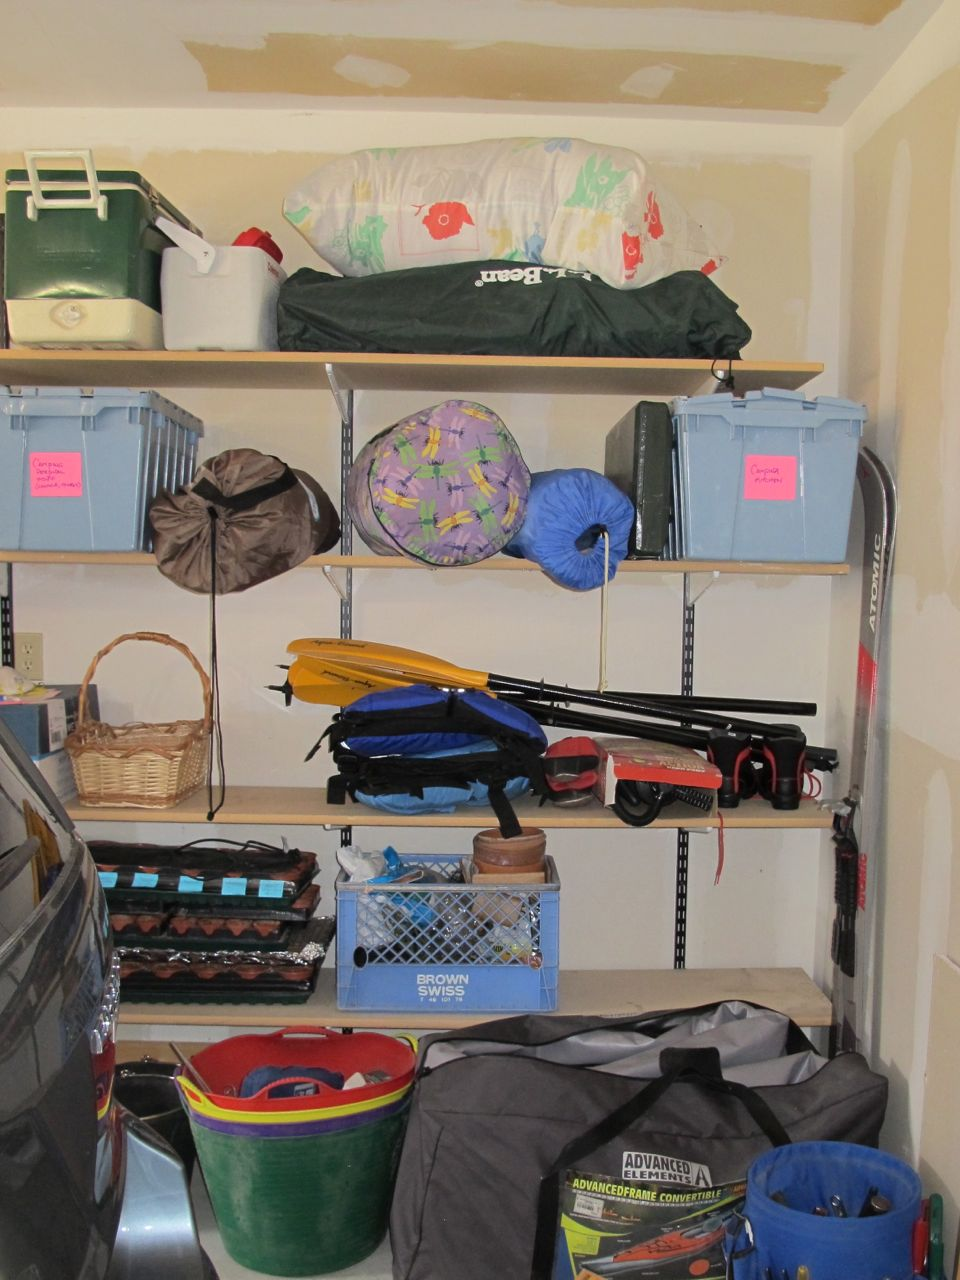 Tidy shelves of camping gear (above) and garden stuff (below).